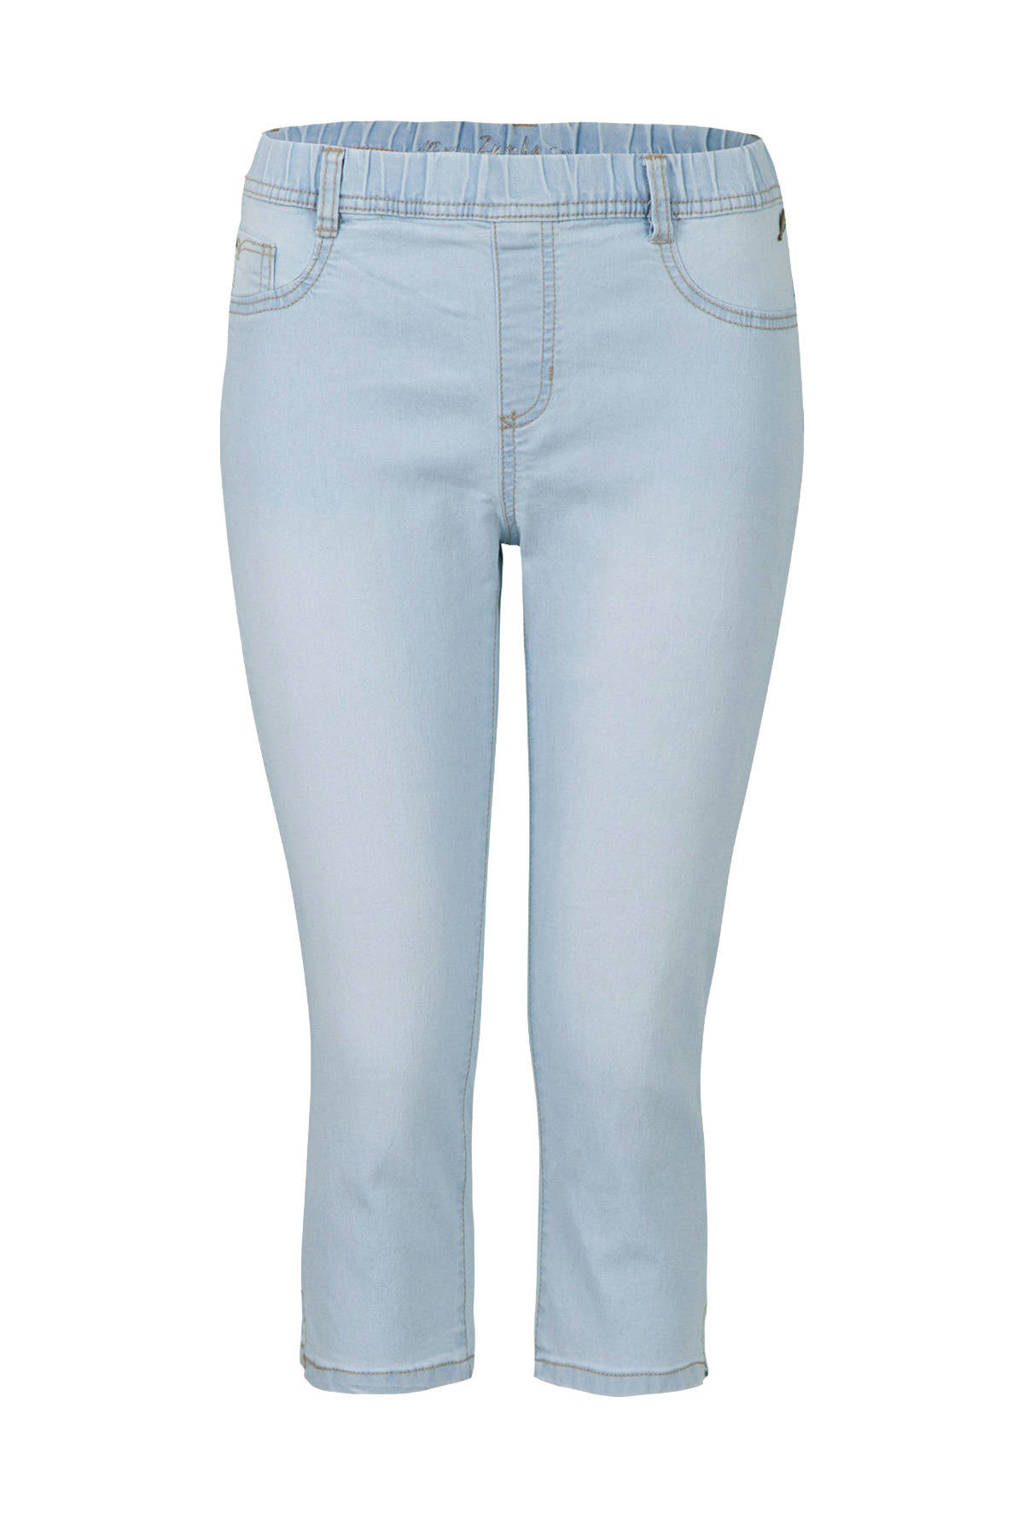 Miss Etam Regulier high waist slim fit capri jeans light denim bleached, Light denim bleached